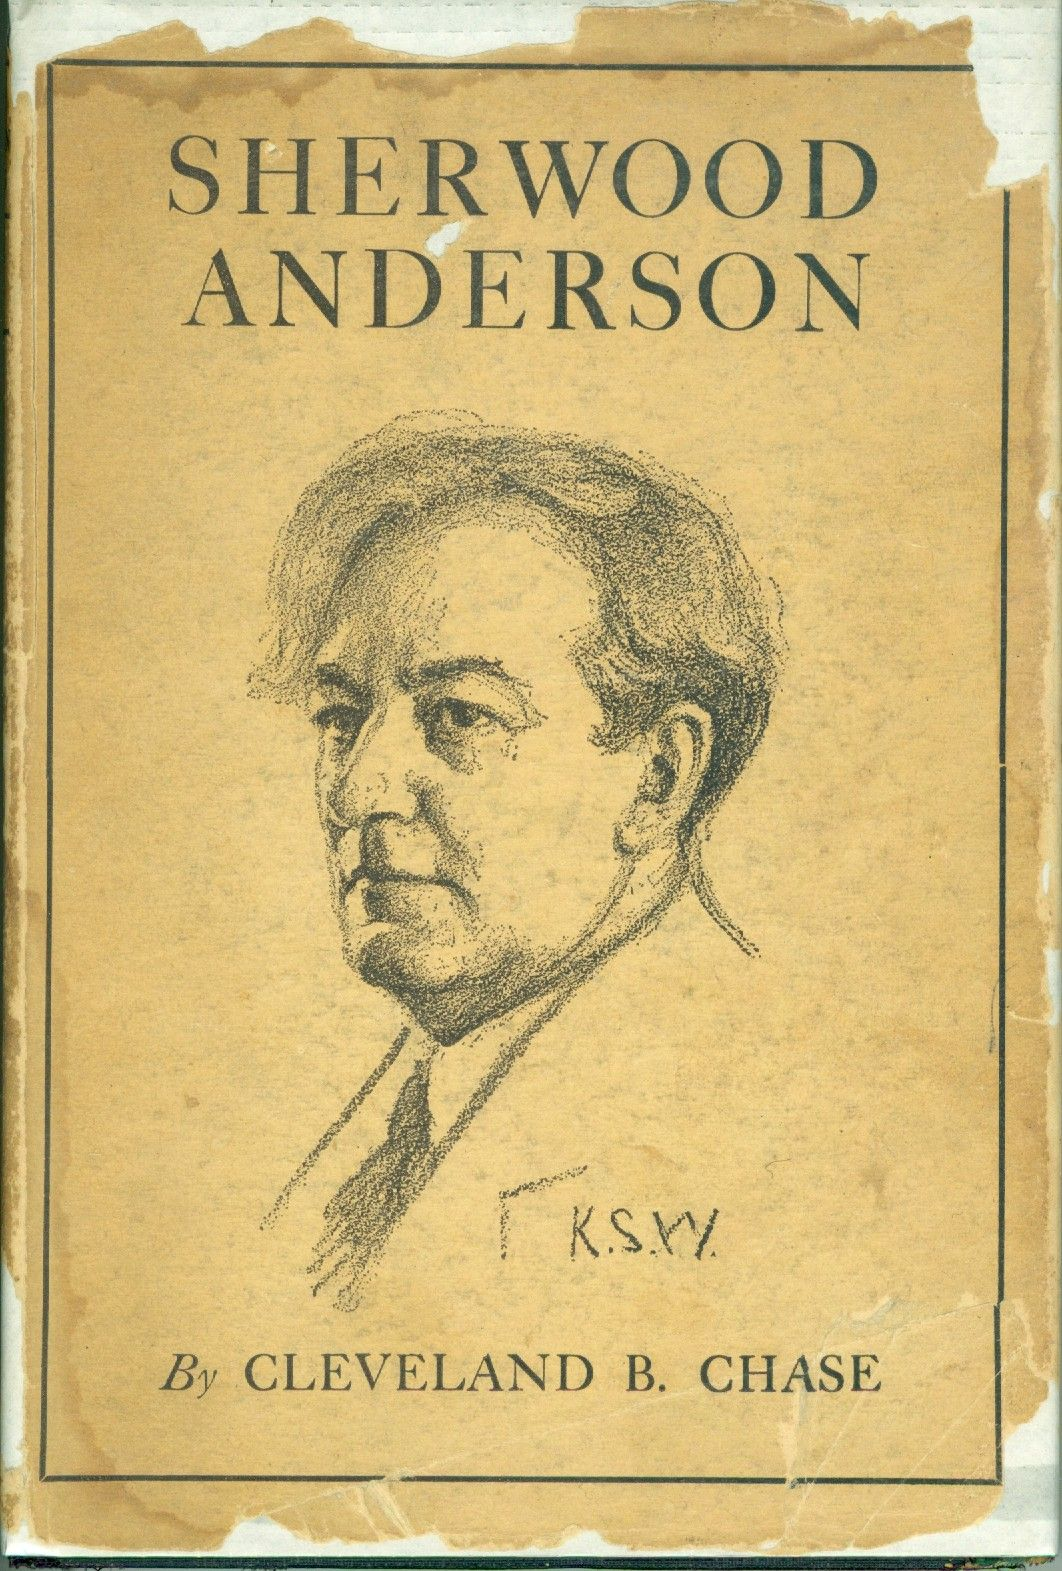 m fool sherwood anderson [verse 1] yea, i'm a fool, hundred thousand for the jewels last year we killed the game and left y'all browsing for the clues old niggas out here search for that fountain of the youth.